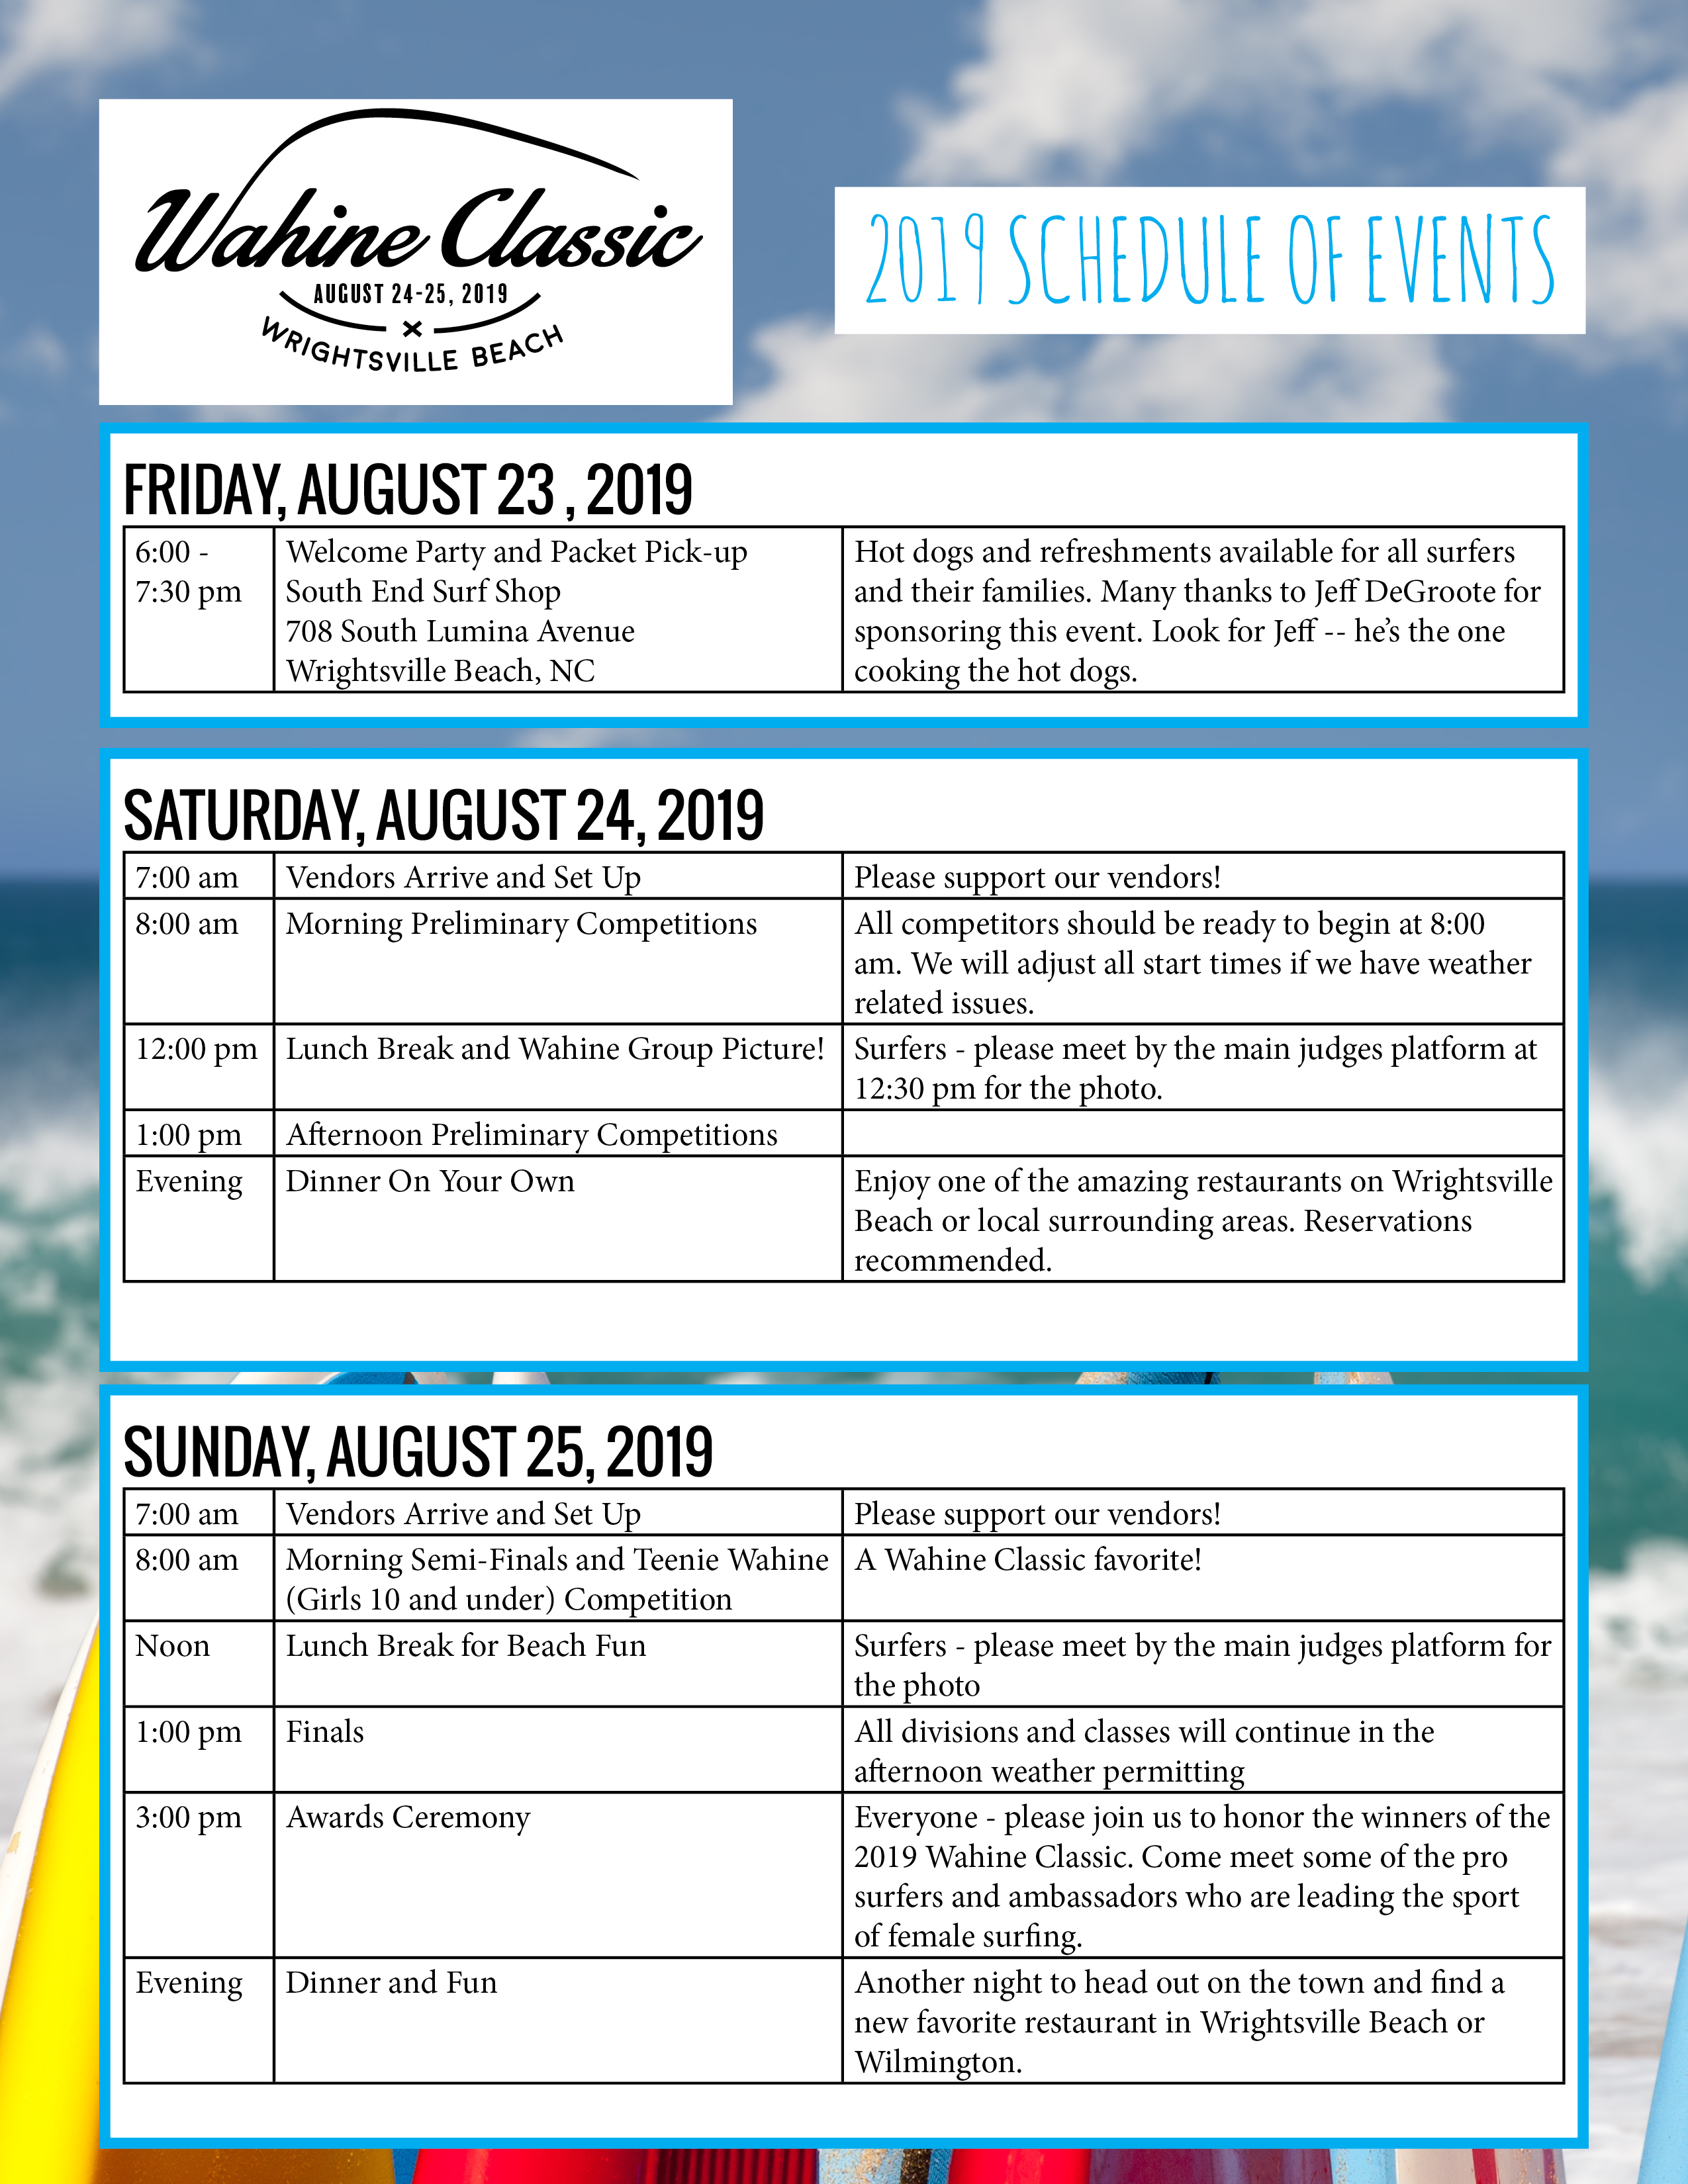 Wrightsville Beach Wahine Classic Surfing Competition schedule_of_events_2019